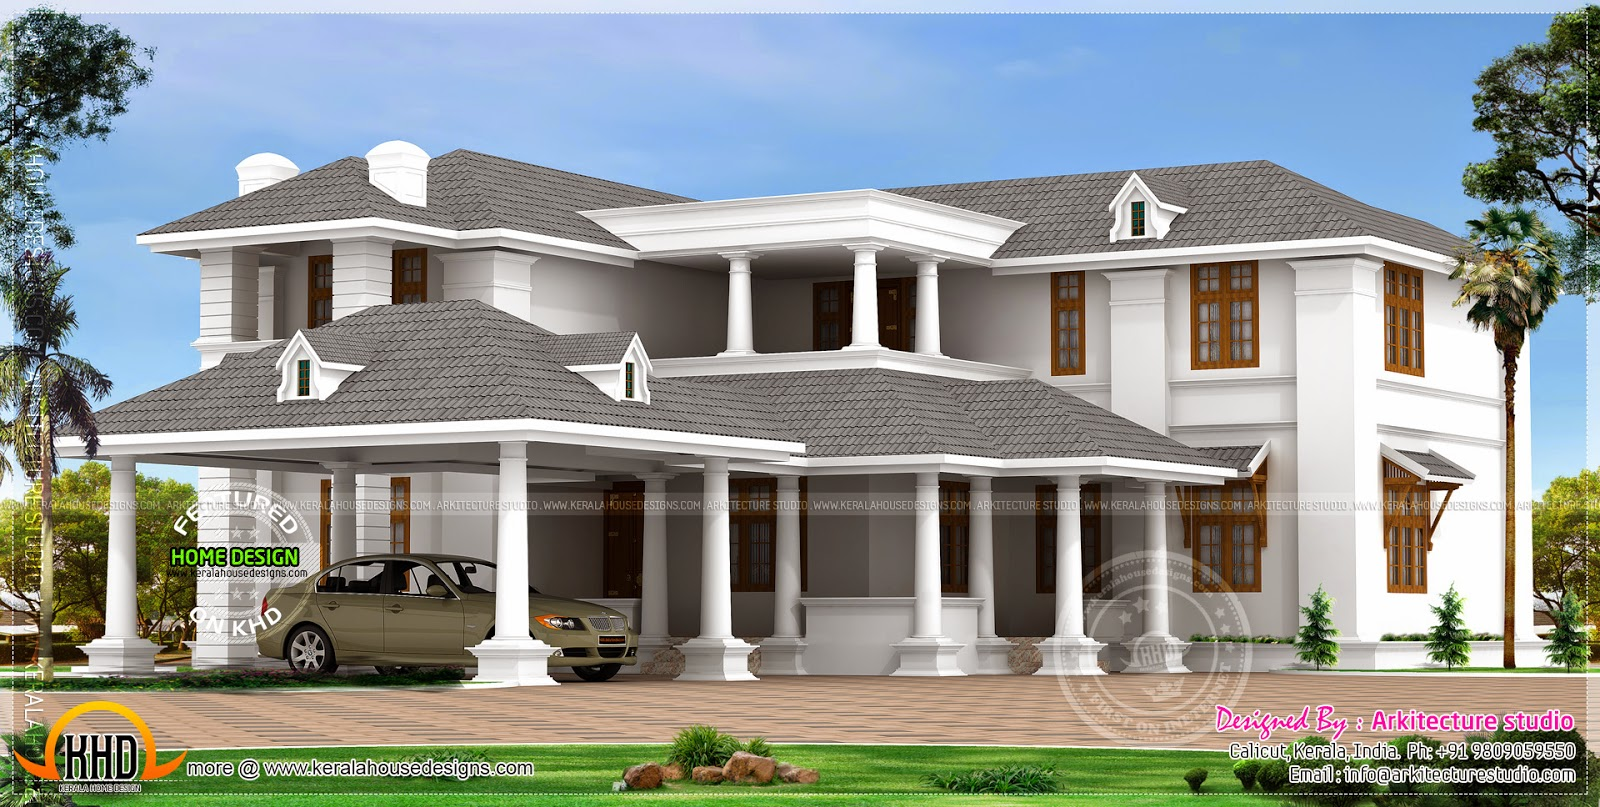 Big luxury home design kerala home design and floor plans for Luxury style house plans